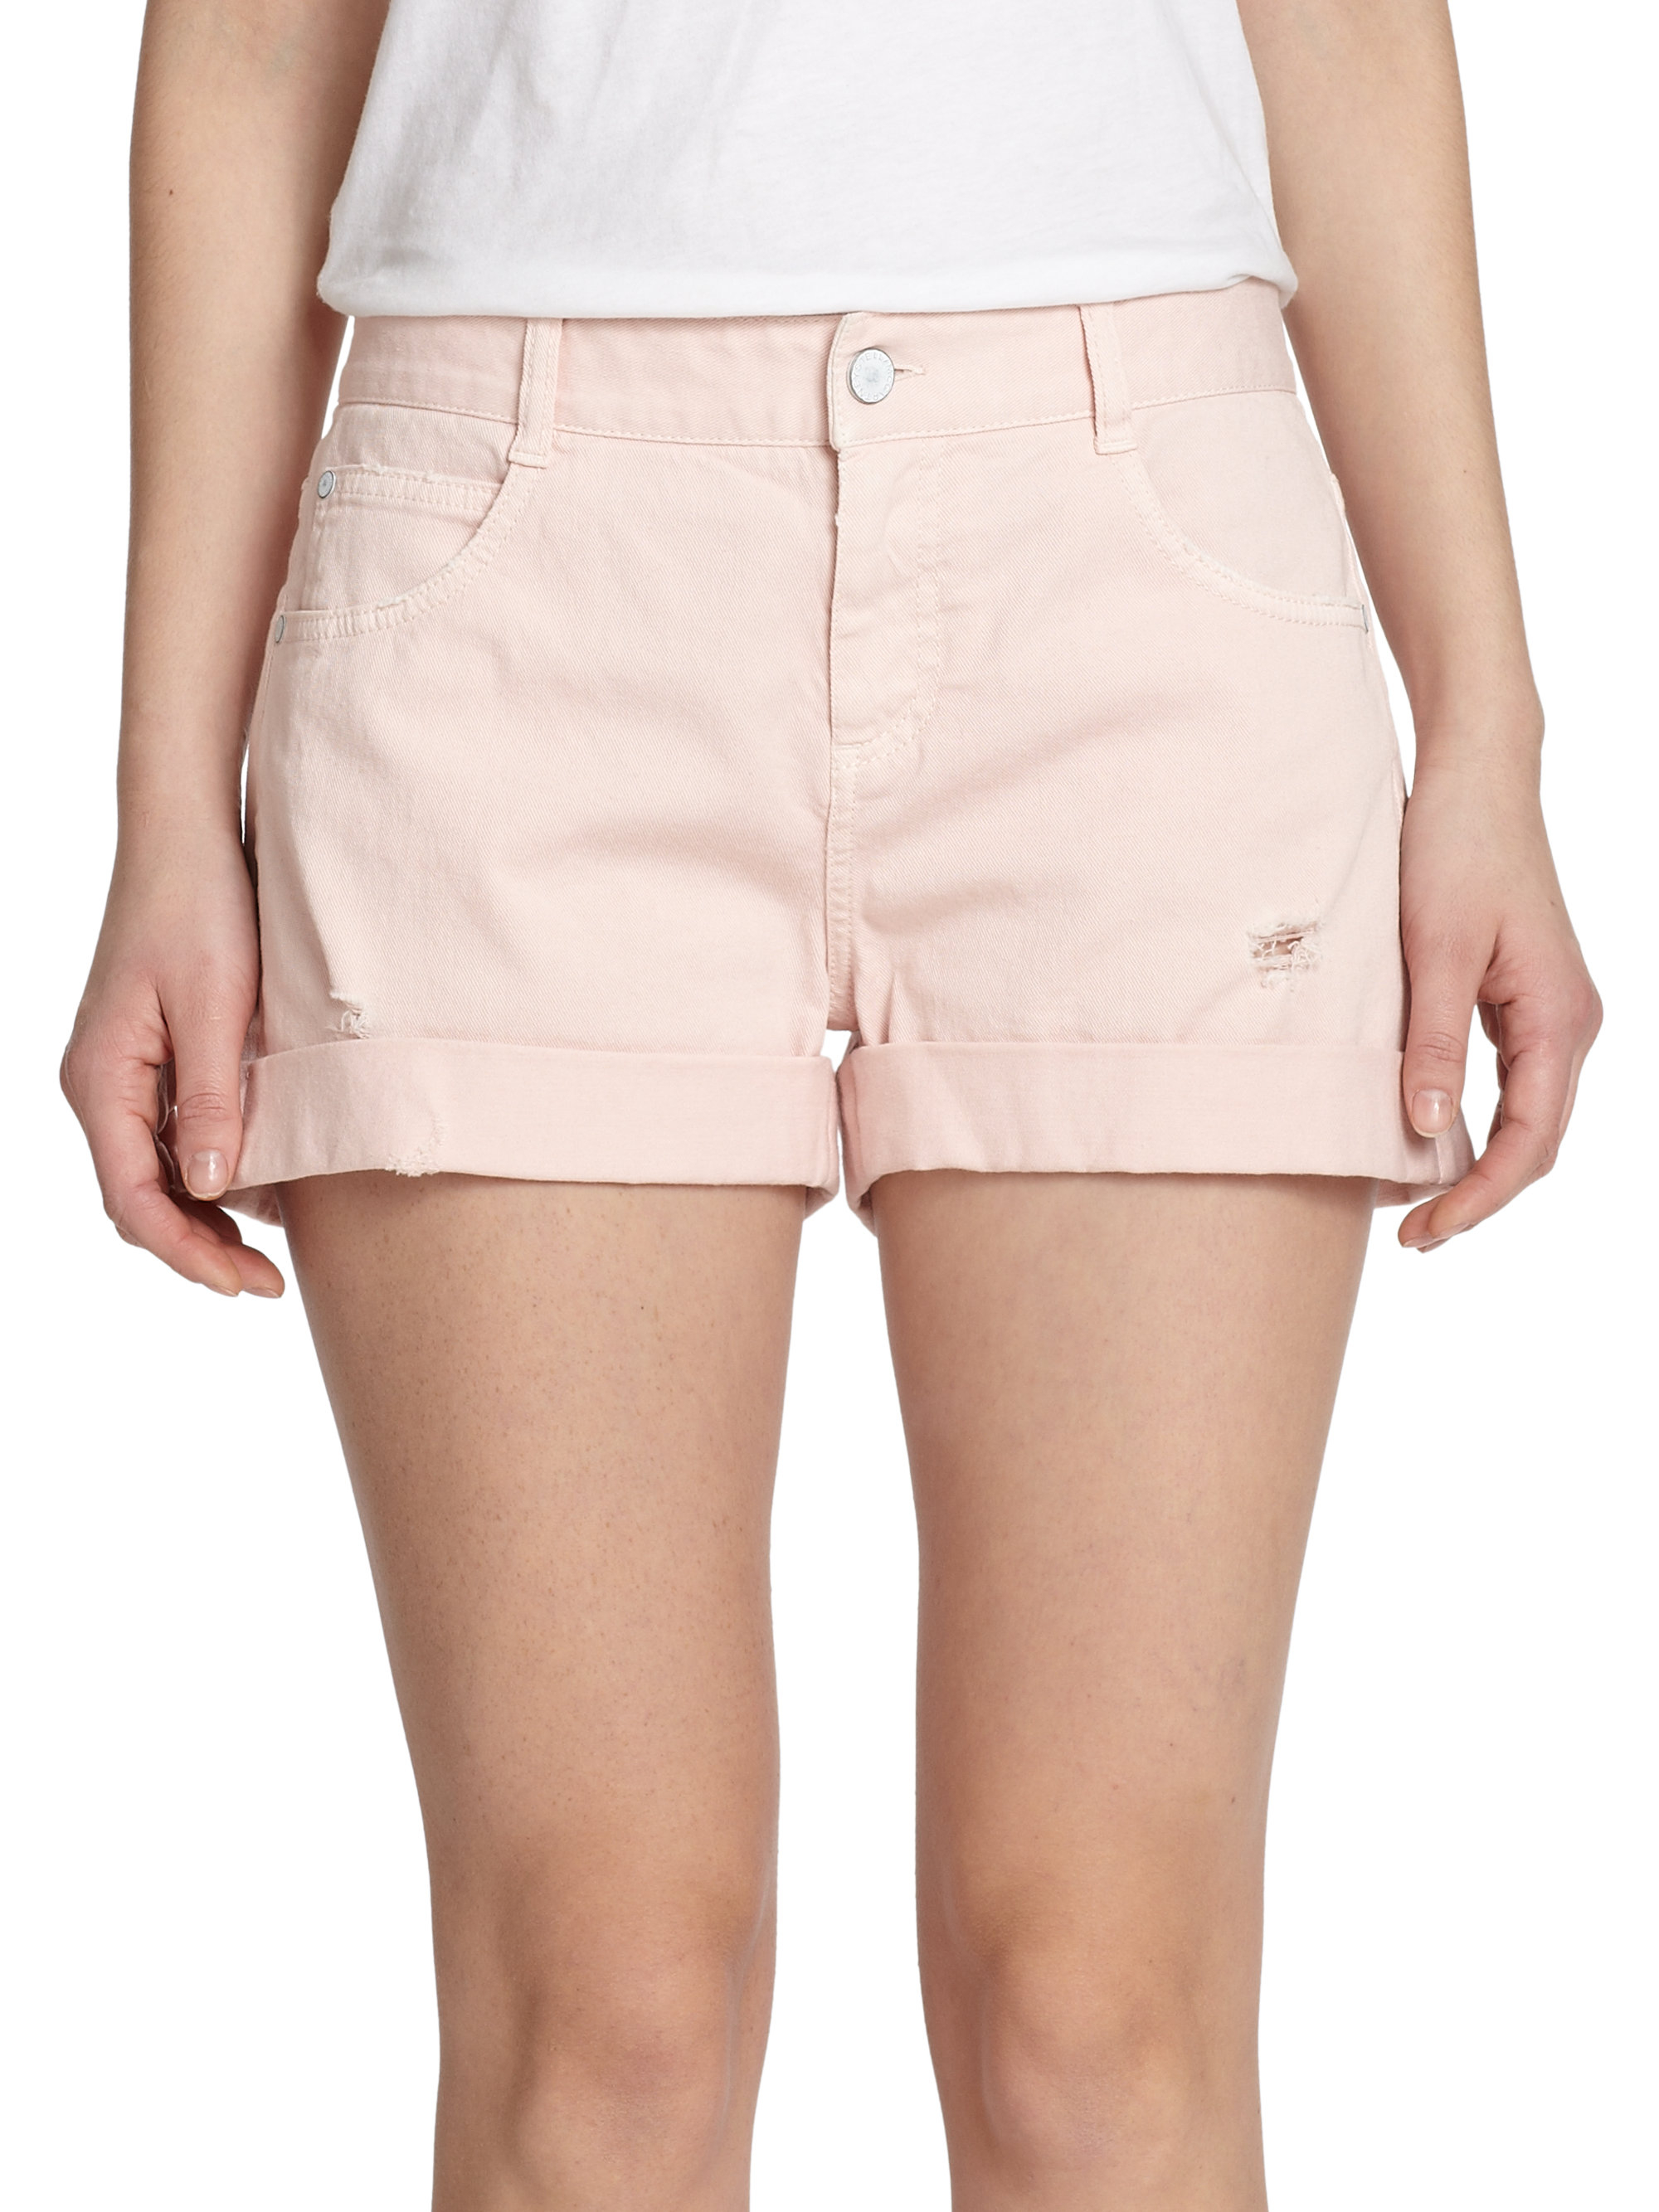 Find pink denim shorts at ShopStyle. Shop the latest collection of pink denim shorts from the most popular stores - all in one place.